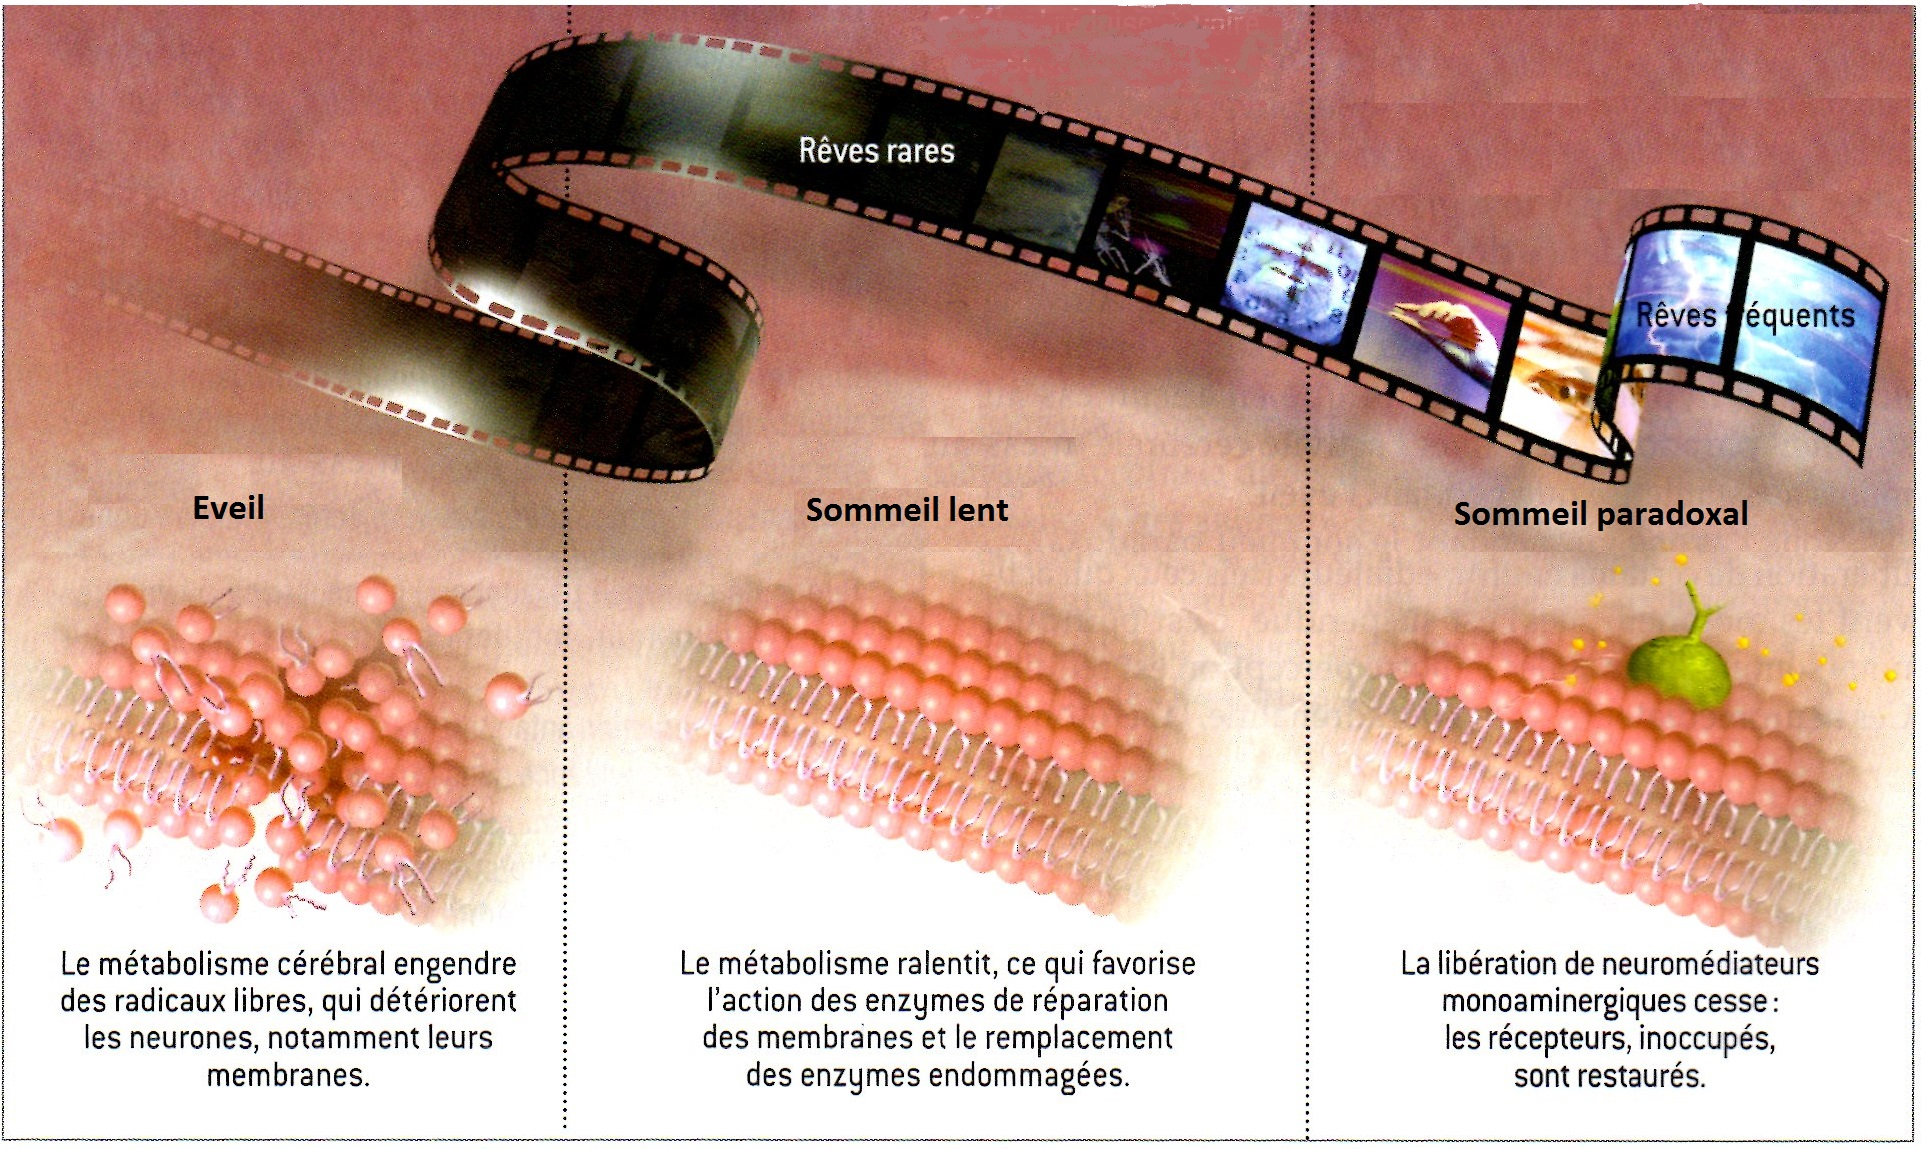 Illustration de Pour la Science (janv 2014)